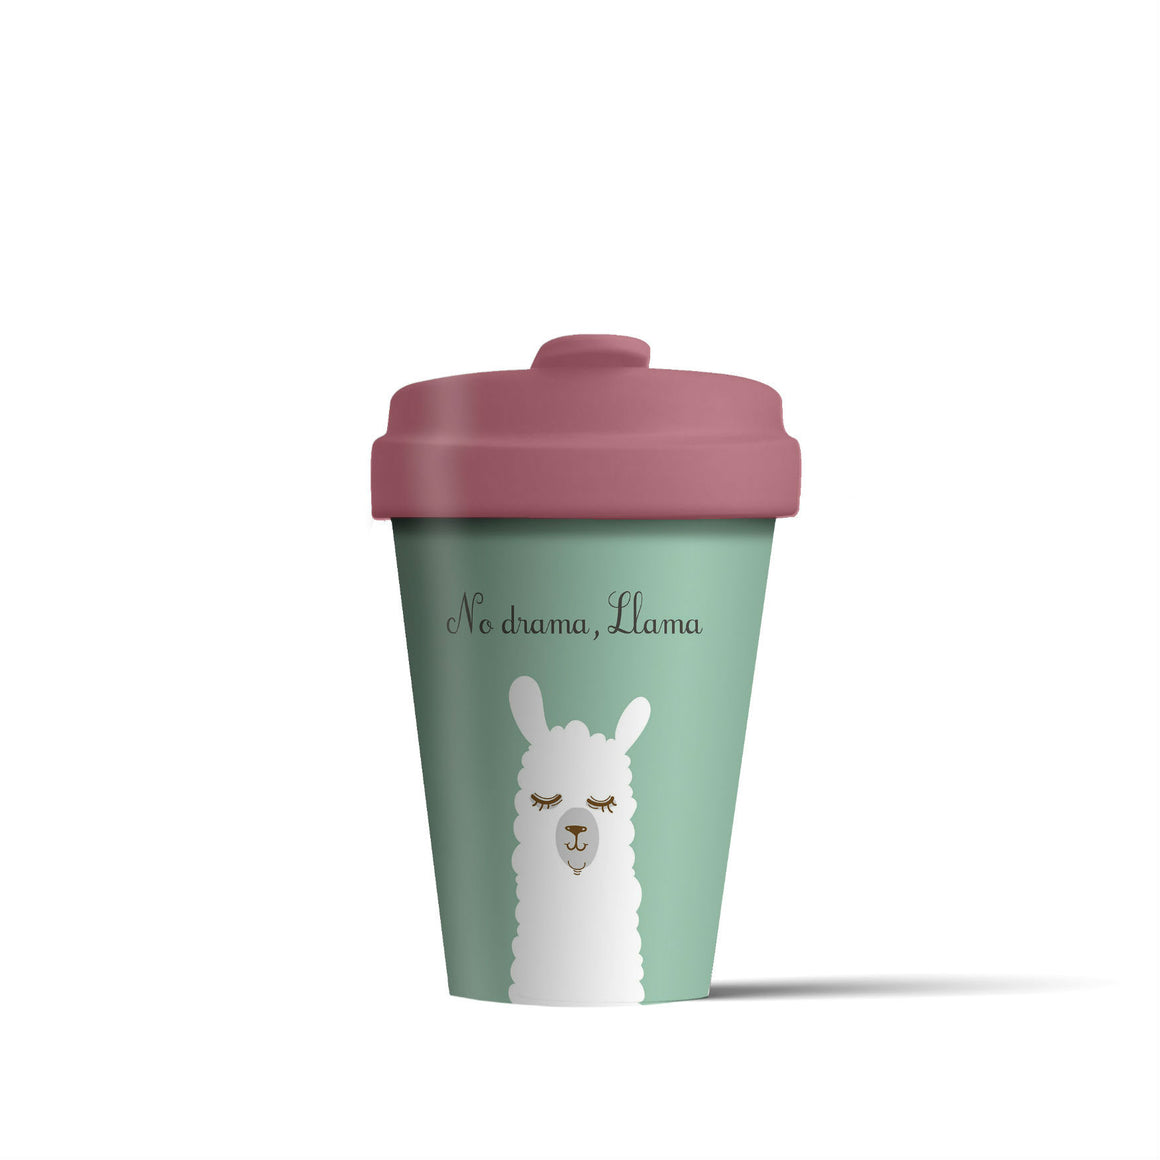 Drama Llama BambooCup - The Love Trees